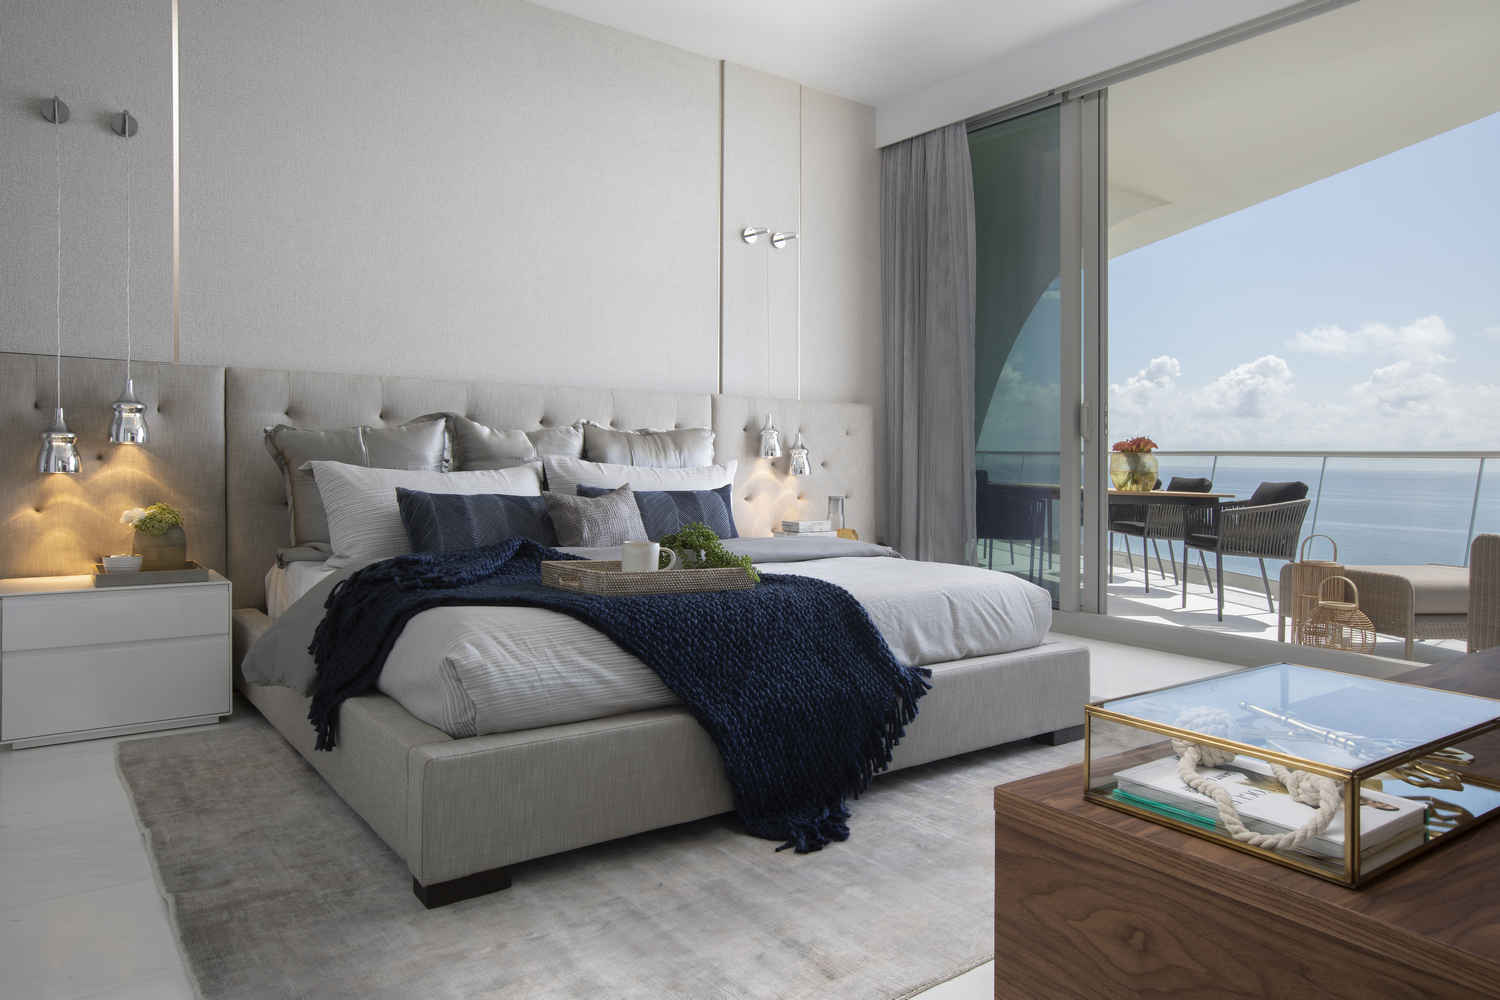 Bonny Beach Bedroom Decorating Ideas